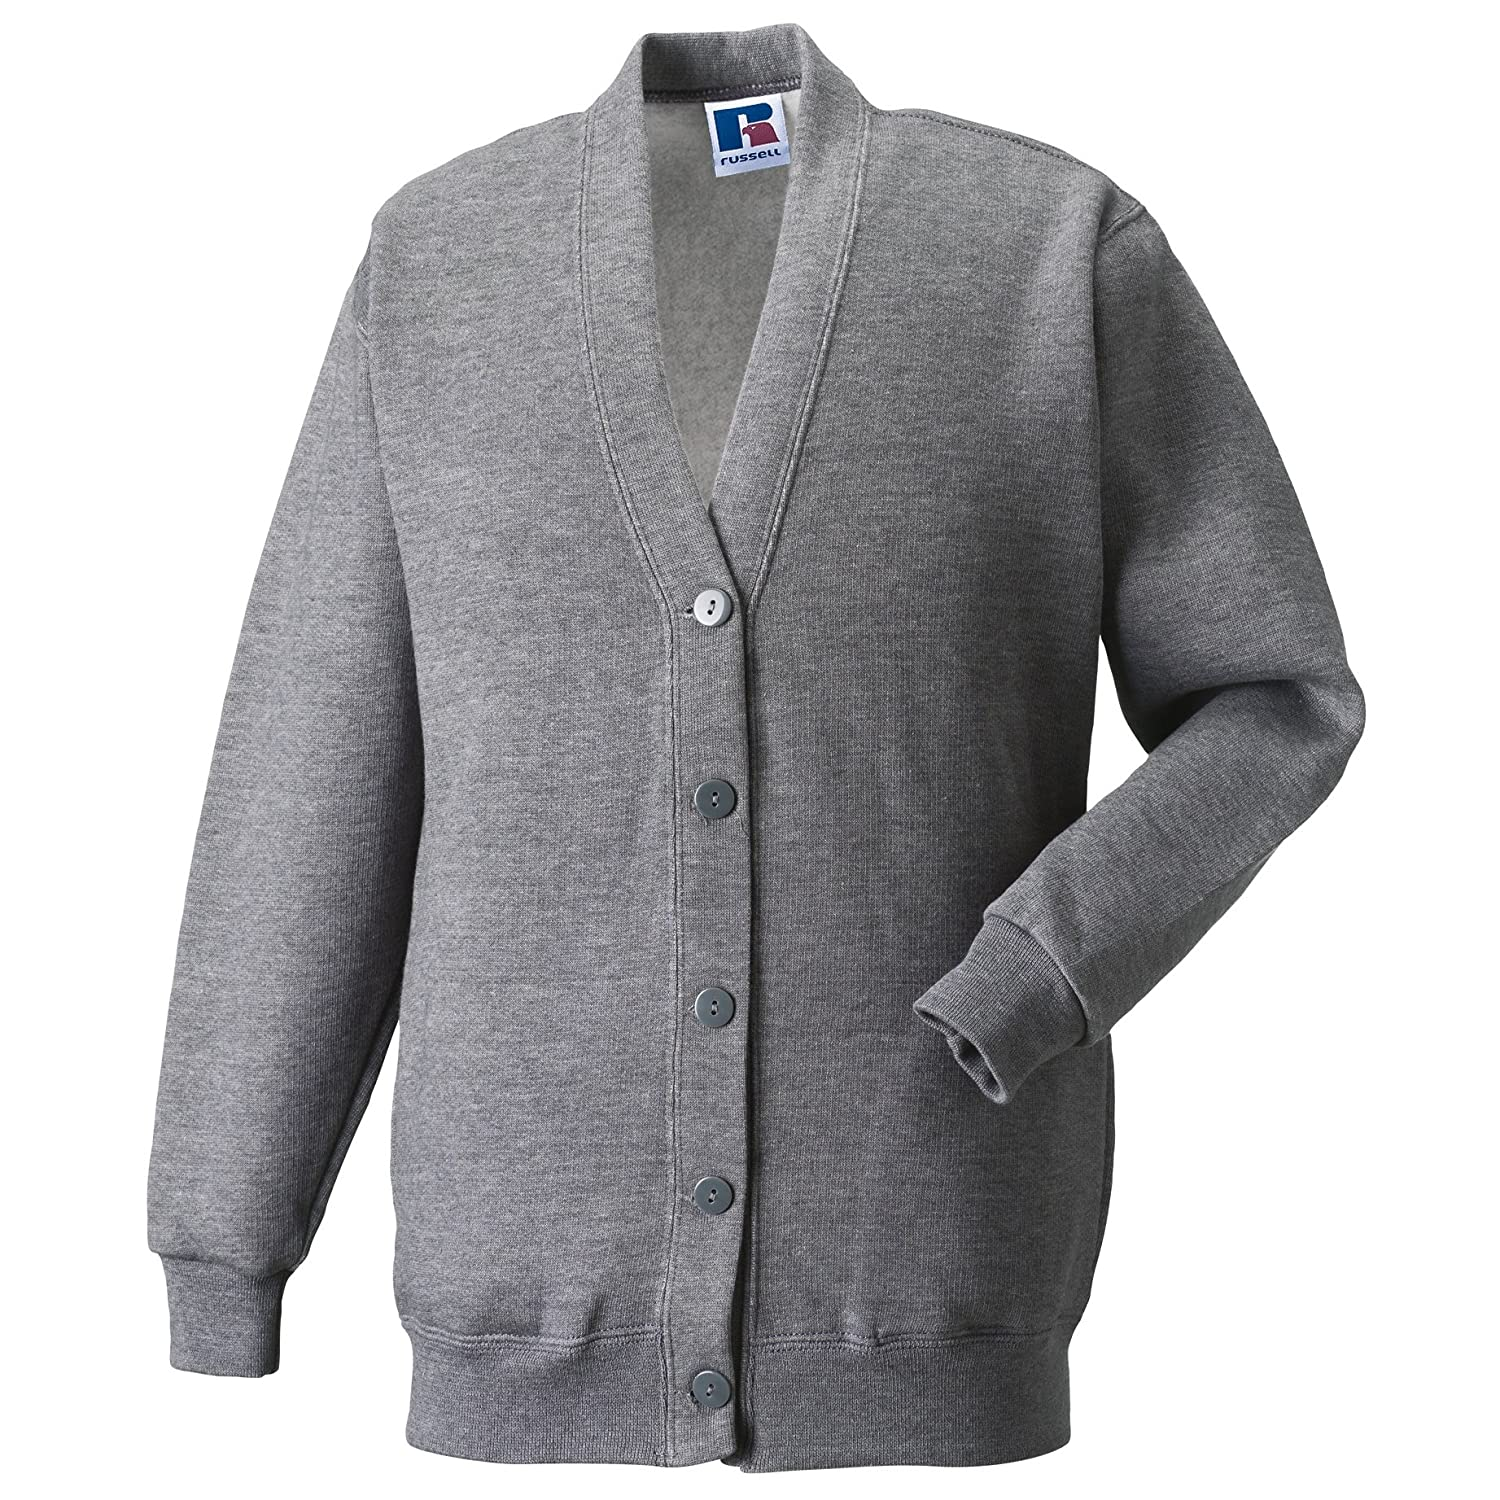 Jerzees Schoolgear Childrens Fleece Cardigan Jerzees Schoolwear